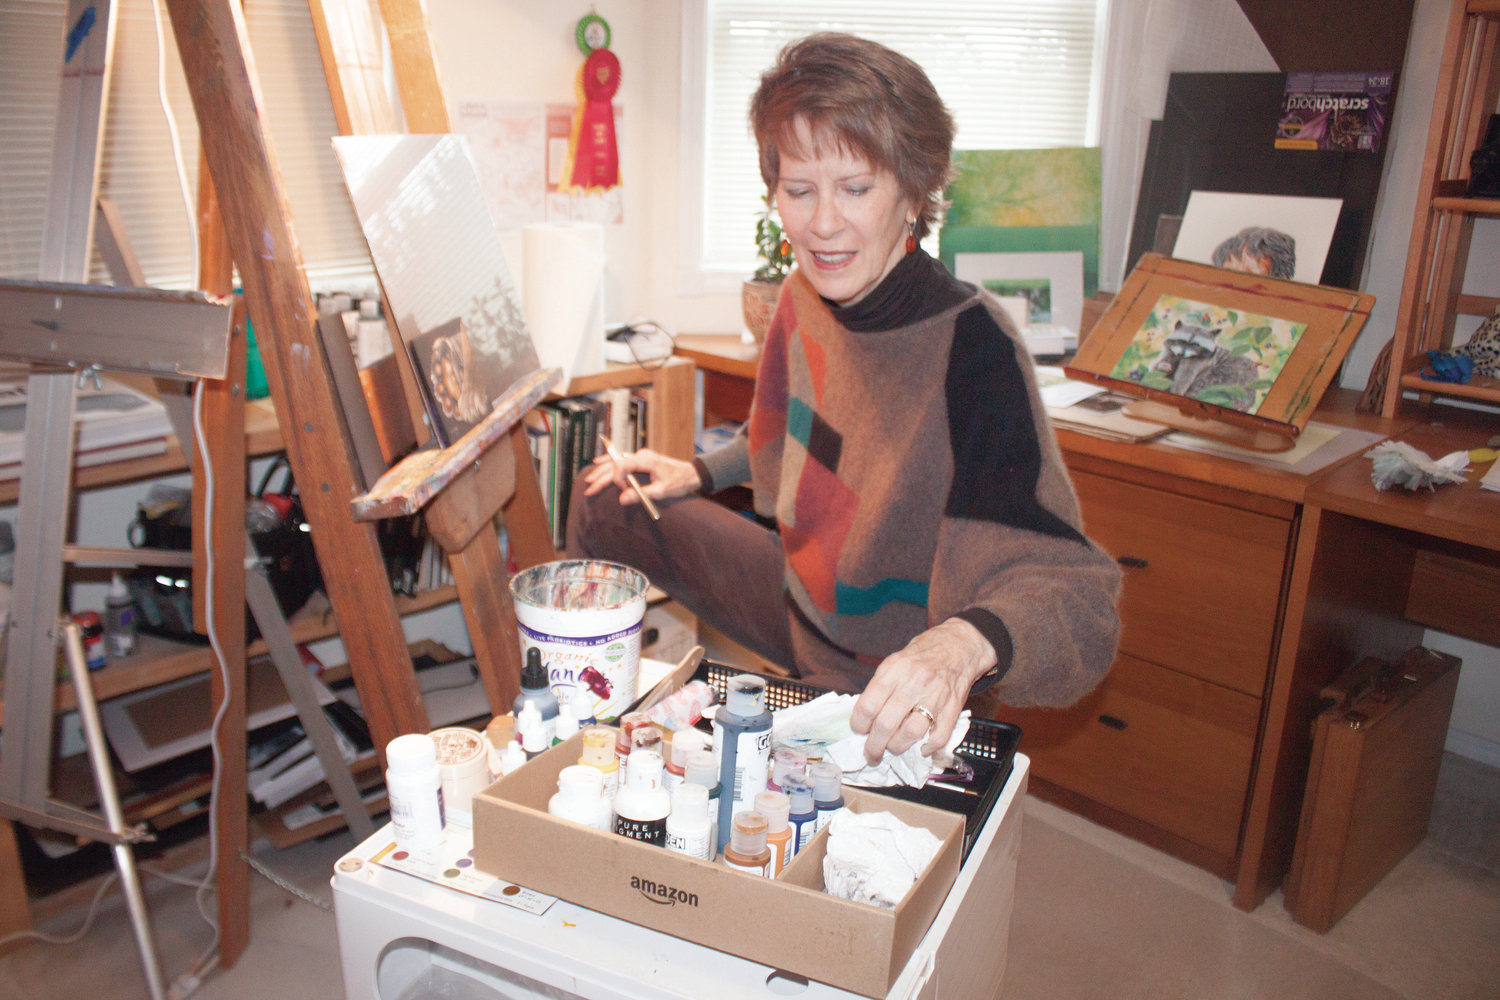 """Laurie Riley does detail work on an illustration of a paw, in the art studio upstairs from the """"Art of the Wild"""" gallery on the ground floor of her home."""